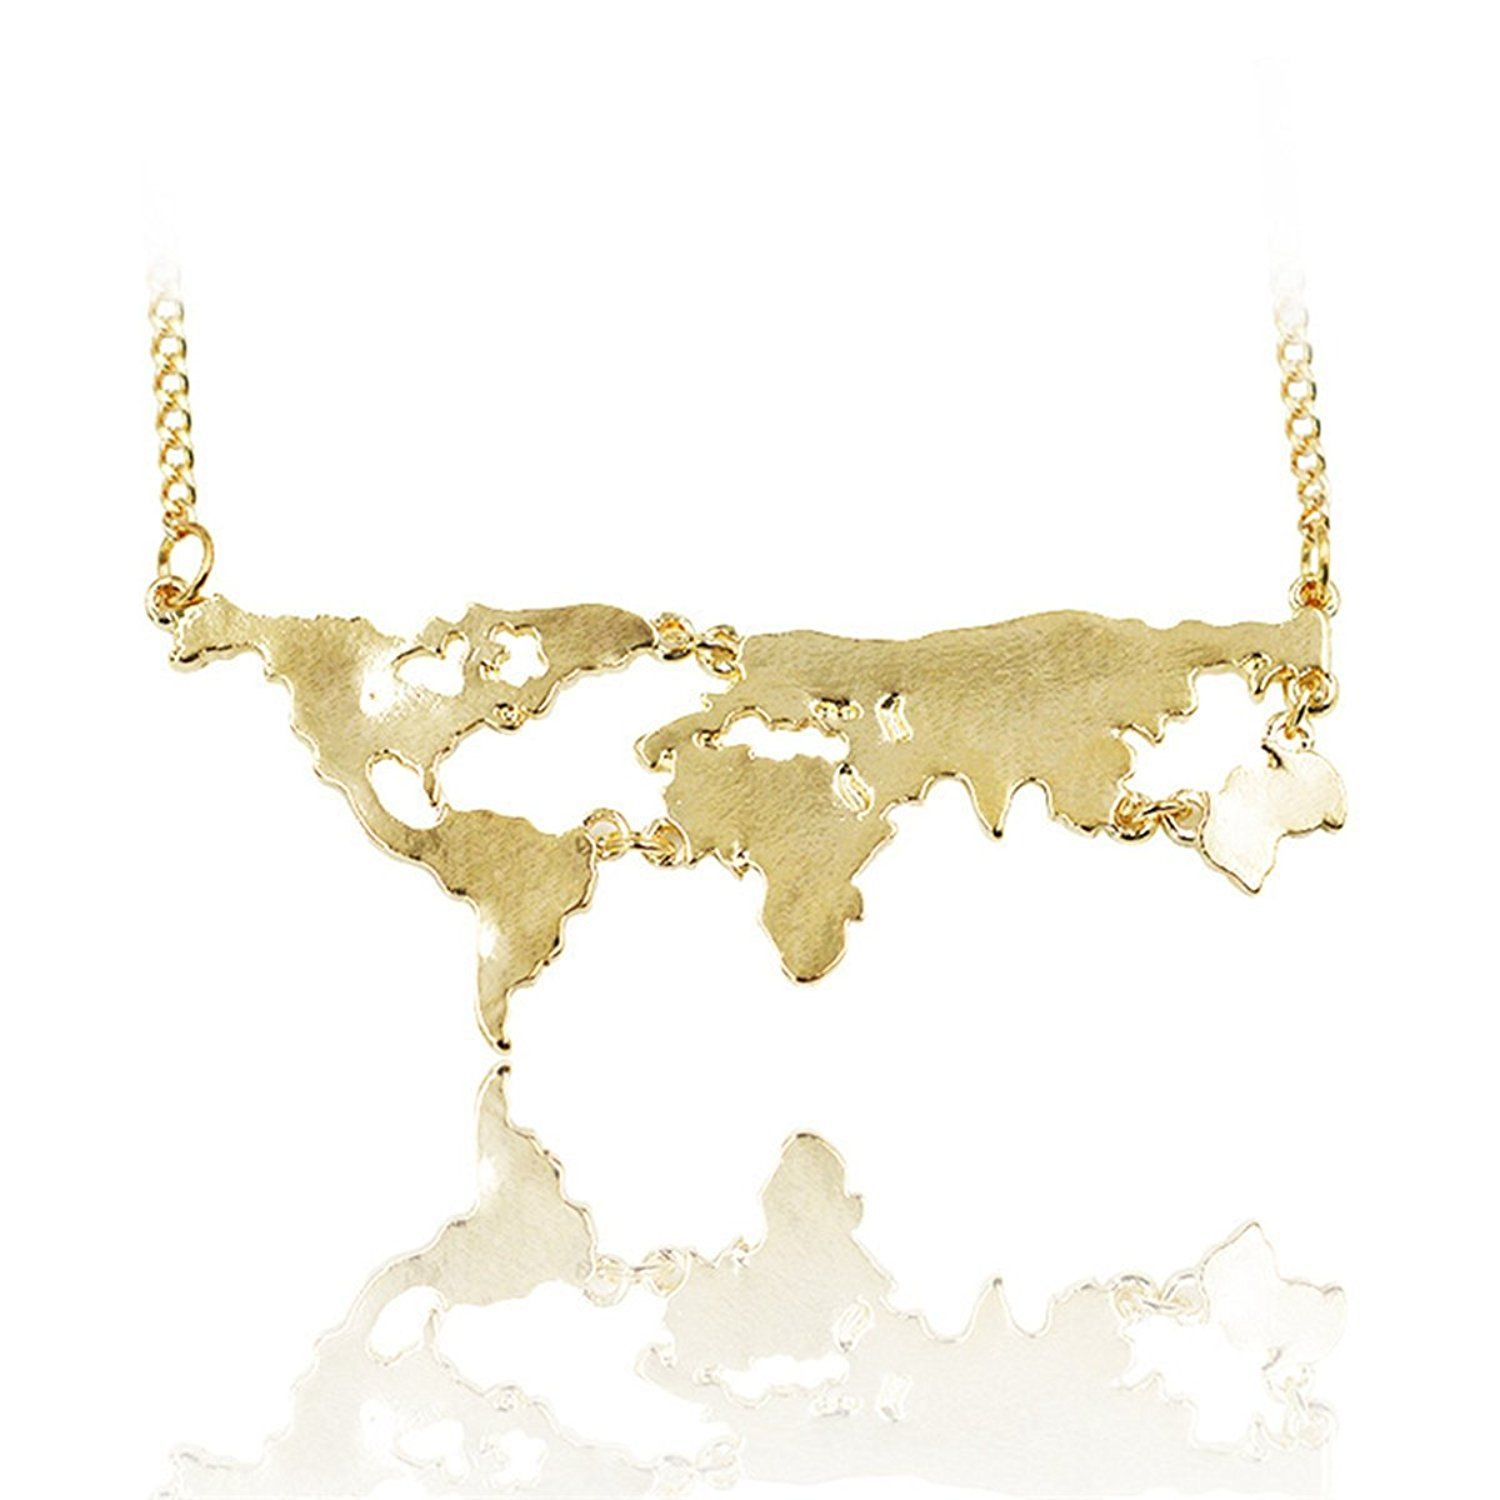 Amazon world continents pendant world map necklace gold amazon world continents pendant world map necklace gold jewelry gumiabroncs Image collections